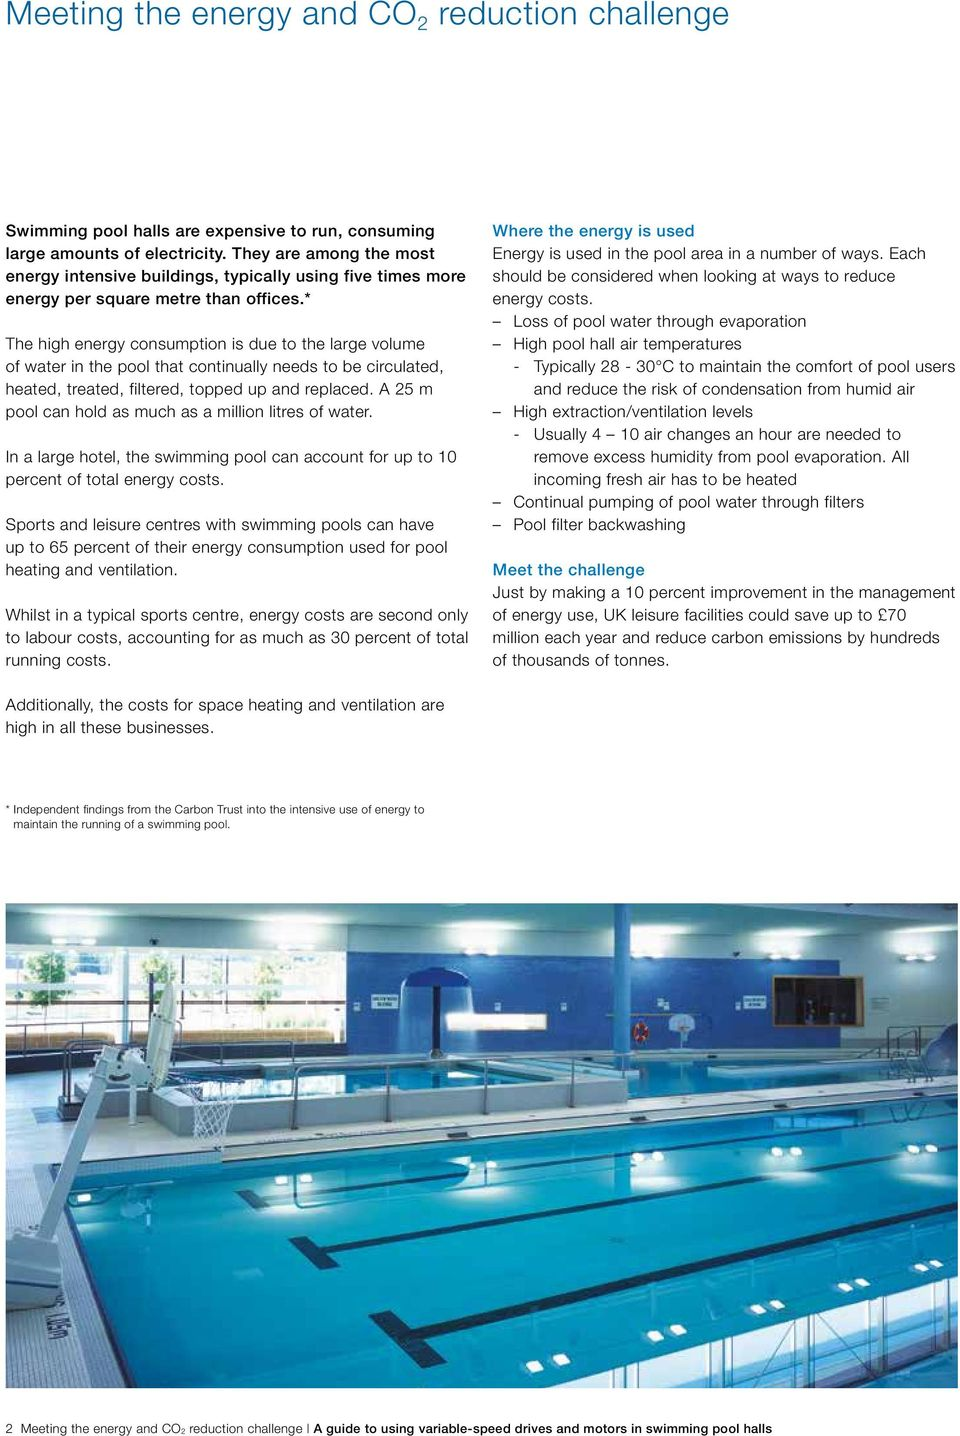 * The high energy consumption is due to the large volume of water in the pool that continually needs to be circulated, heated, treated, filtered, topped up replaced.